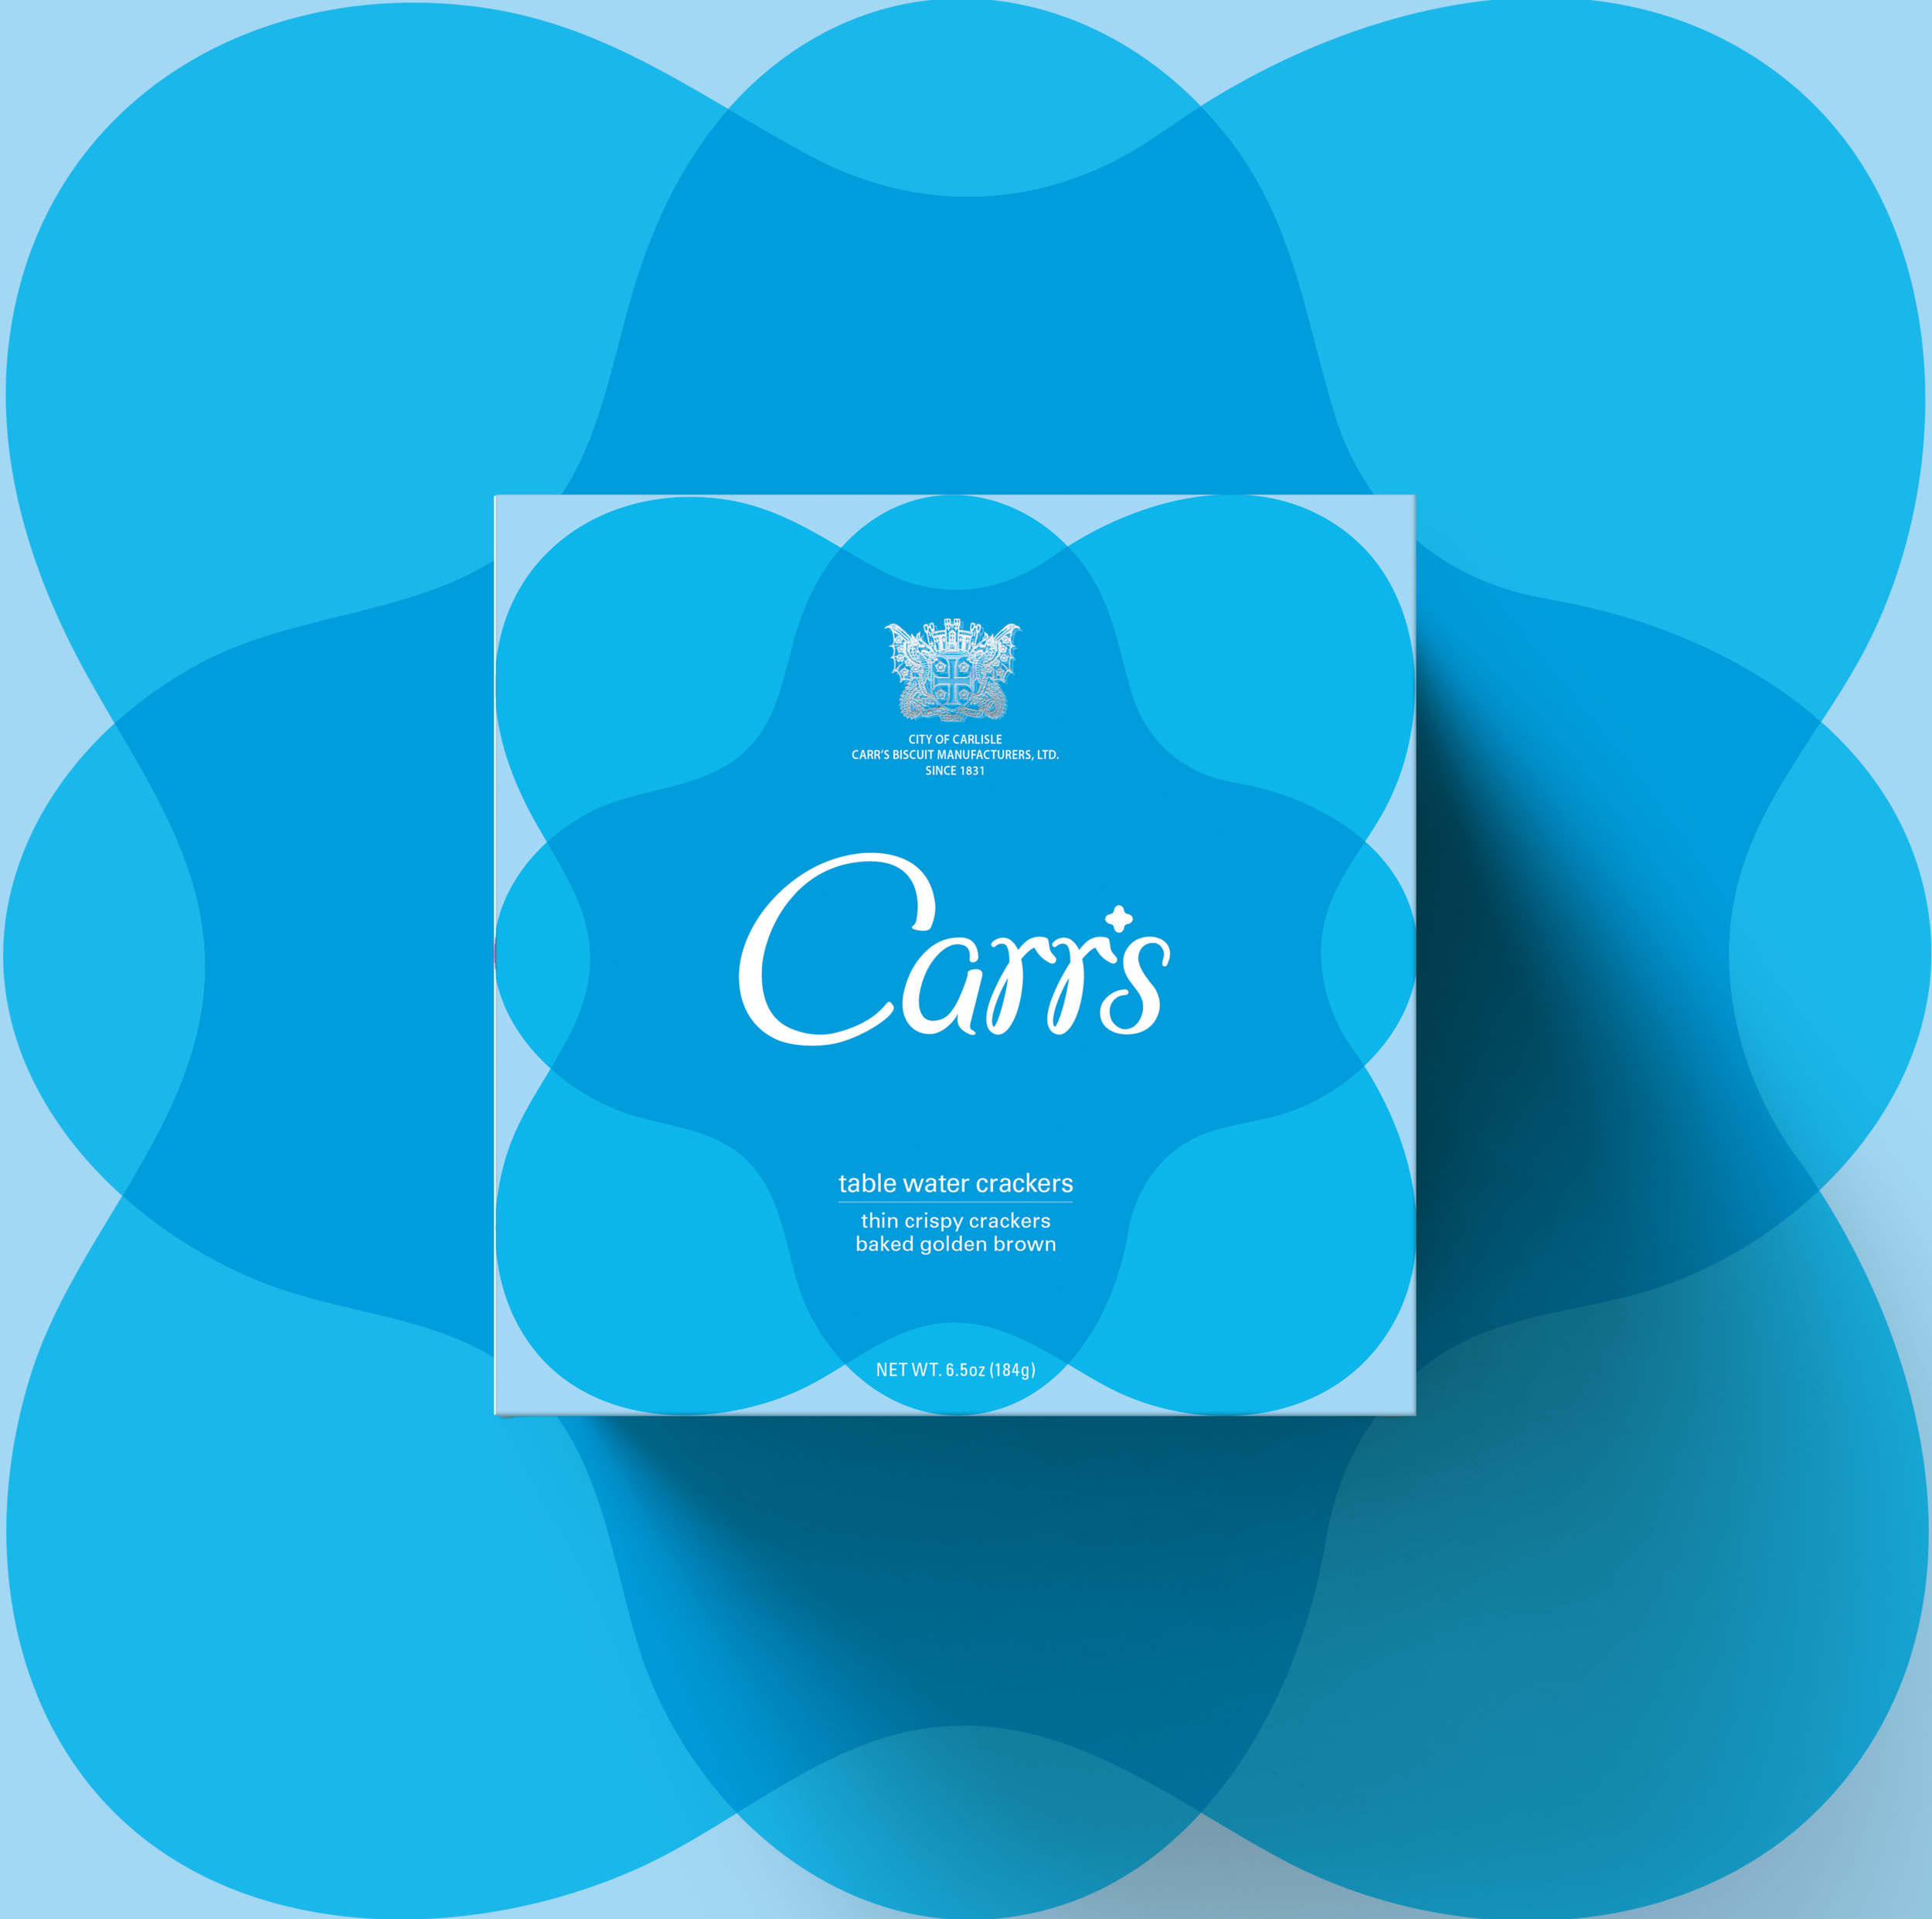 Redesign-Carr's-Biscuits-Redesign-table-water-cracker.png